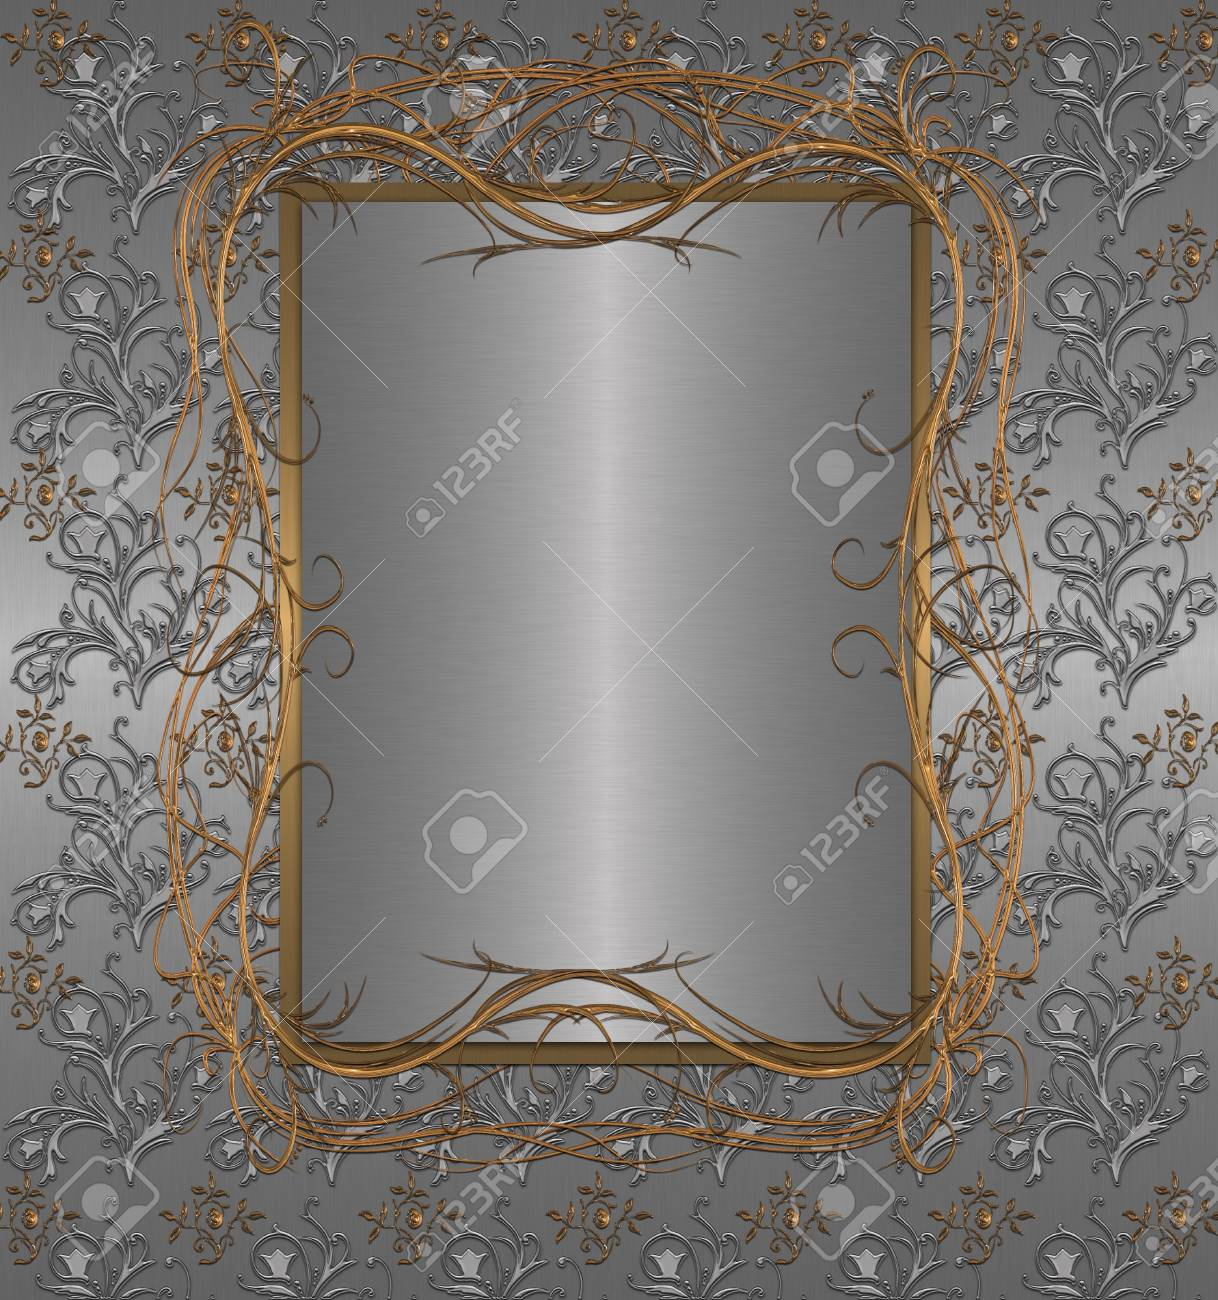 gold with silver floral vintage Stock Photo - 9755878